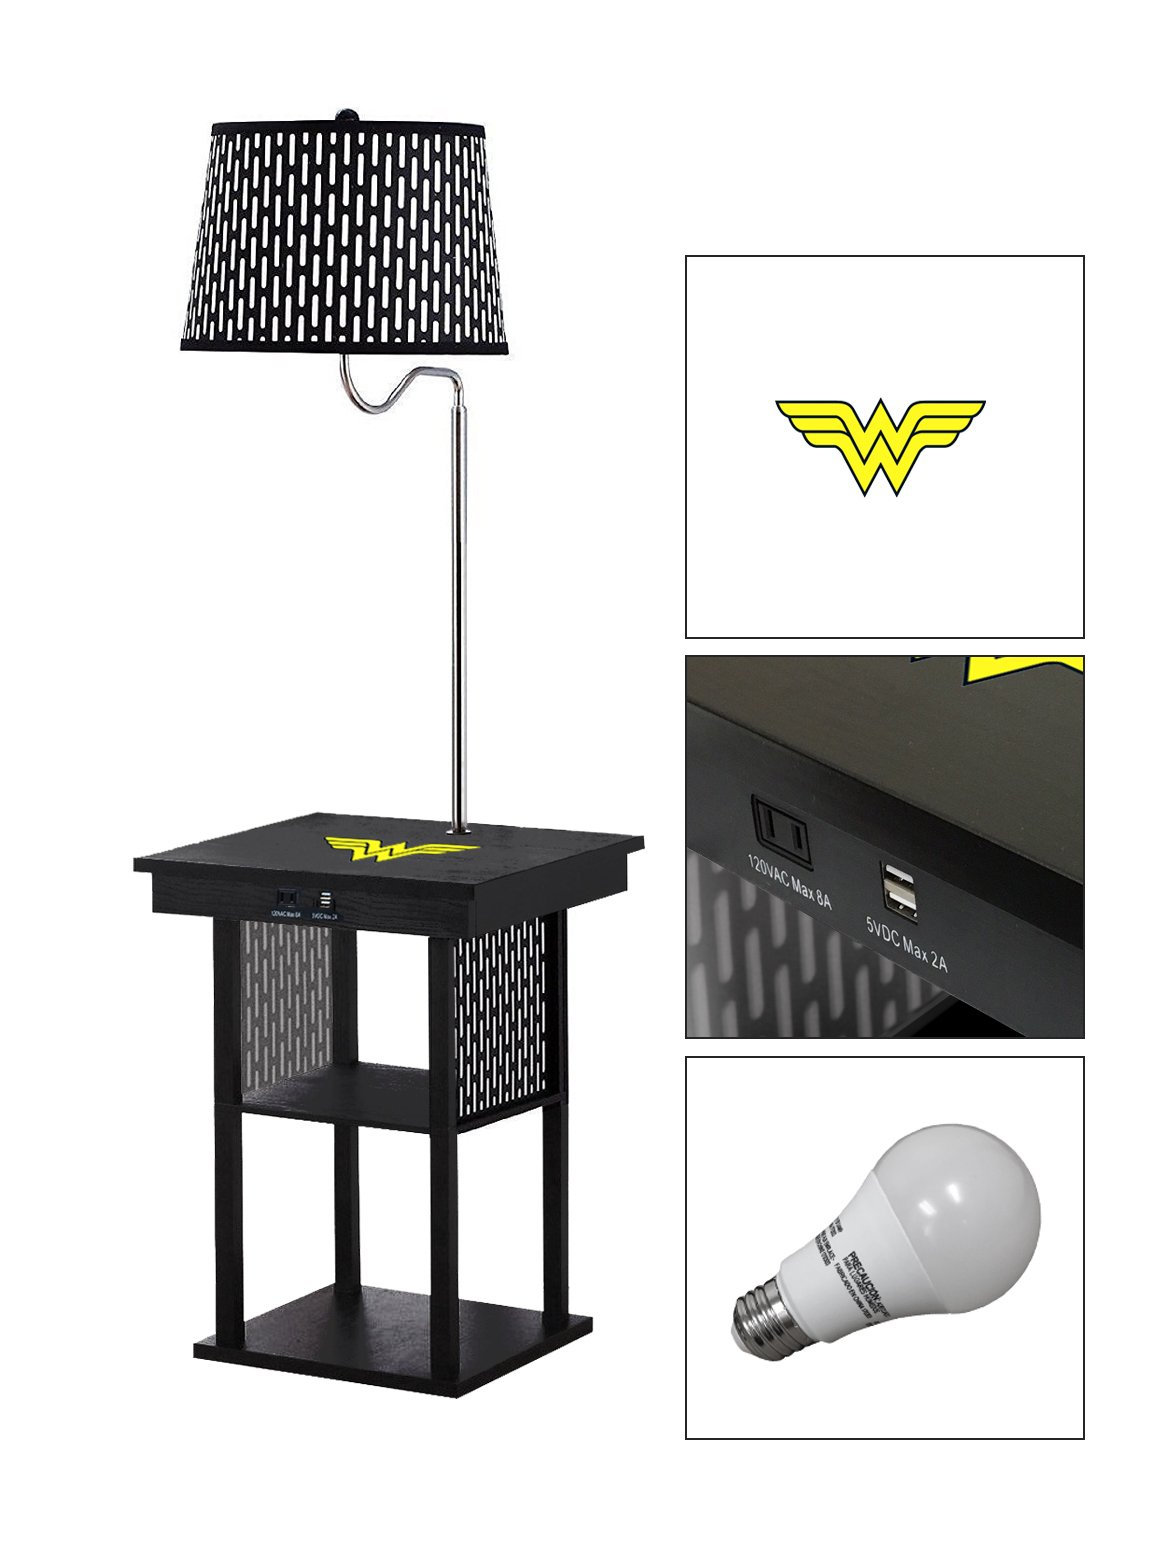 Black Side End Table USB Ports Electric Outlet Built-In Lamp Featuring a Novelty Themed Logo-FREE LED BULB(Wonder Woman)